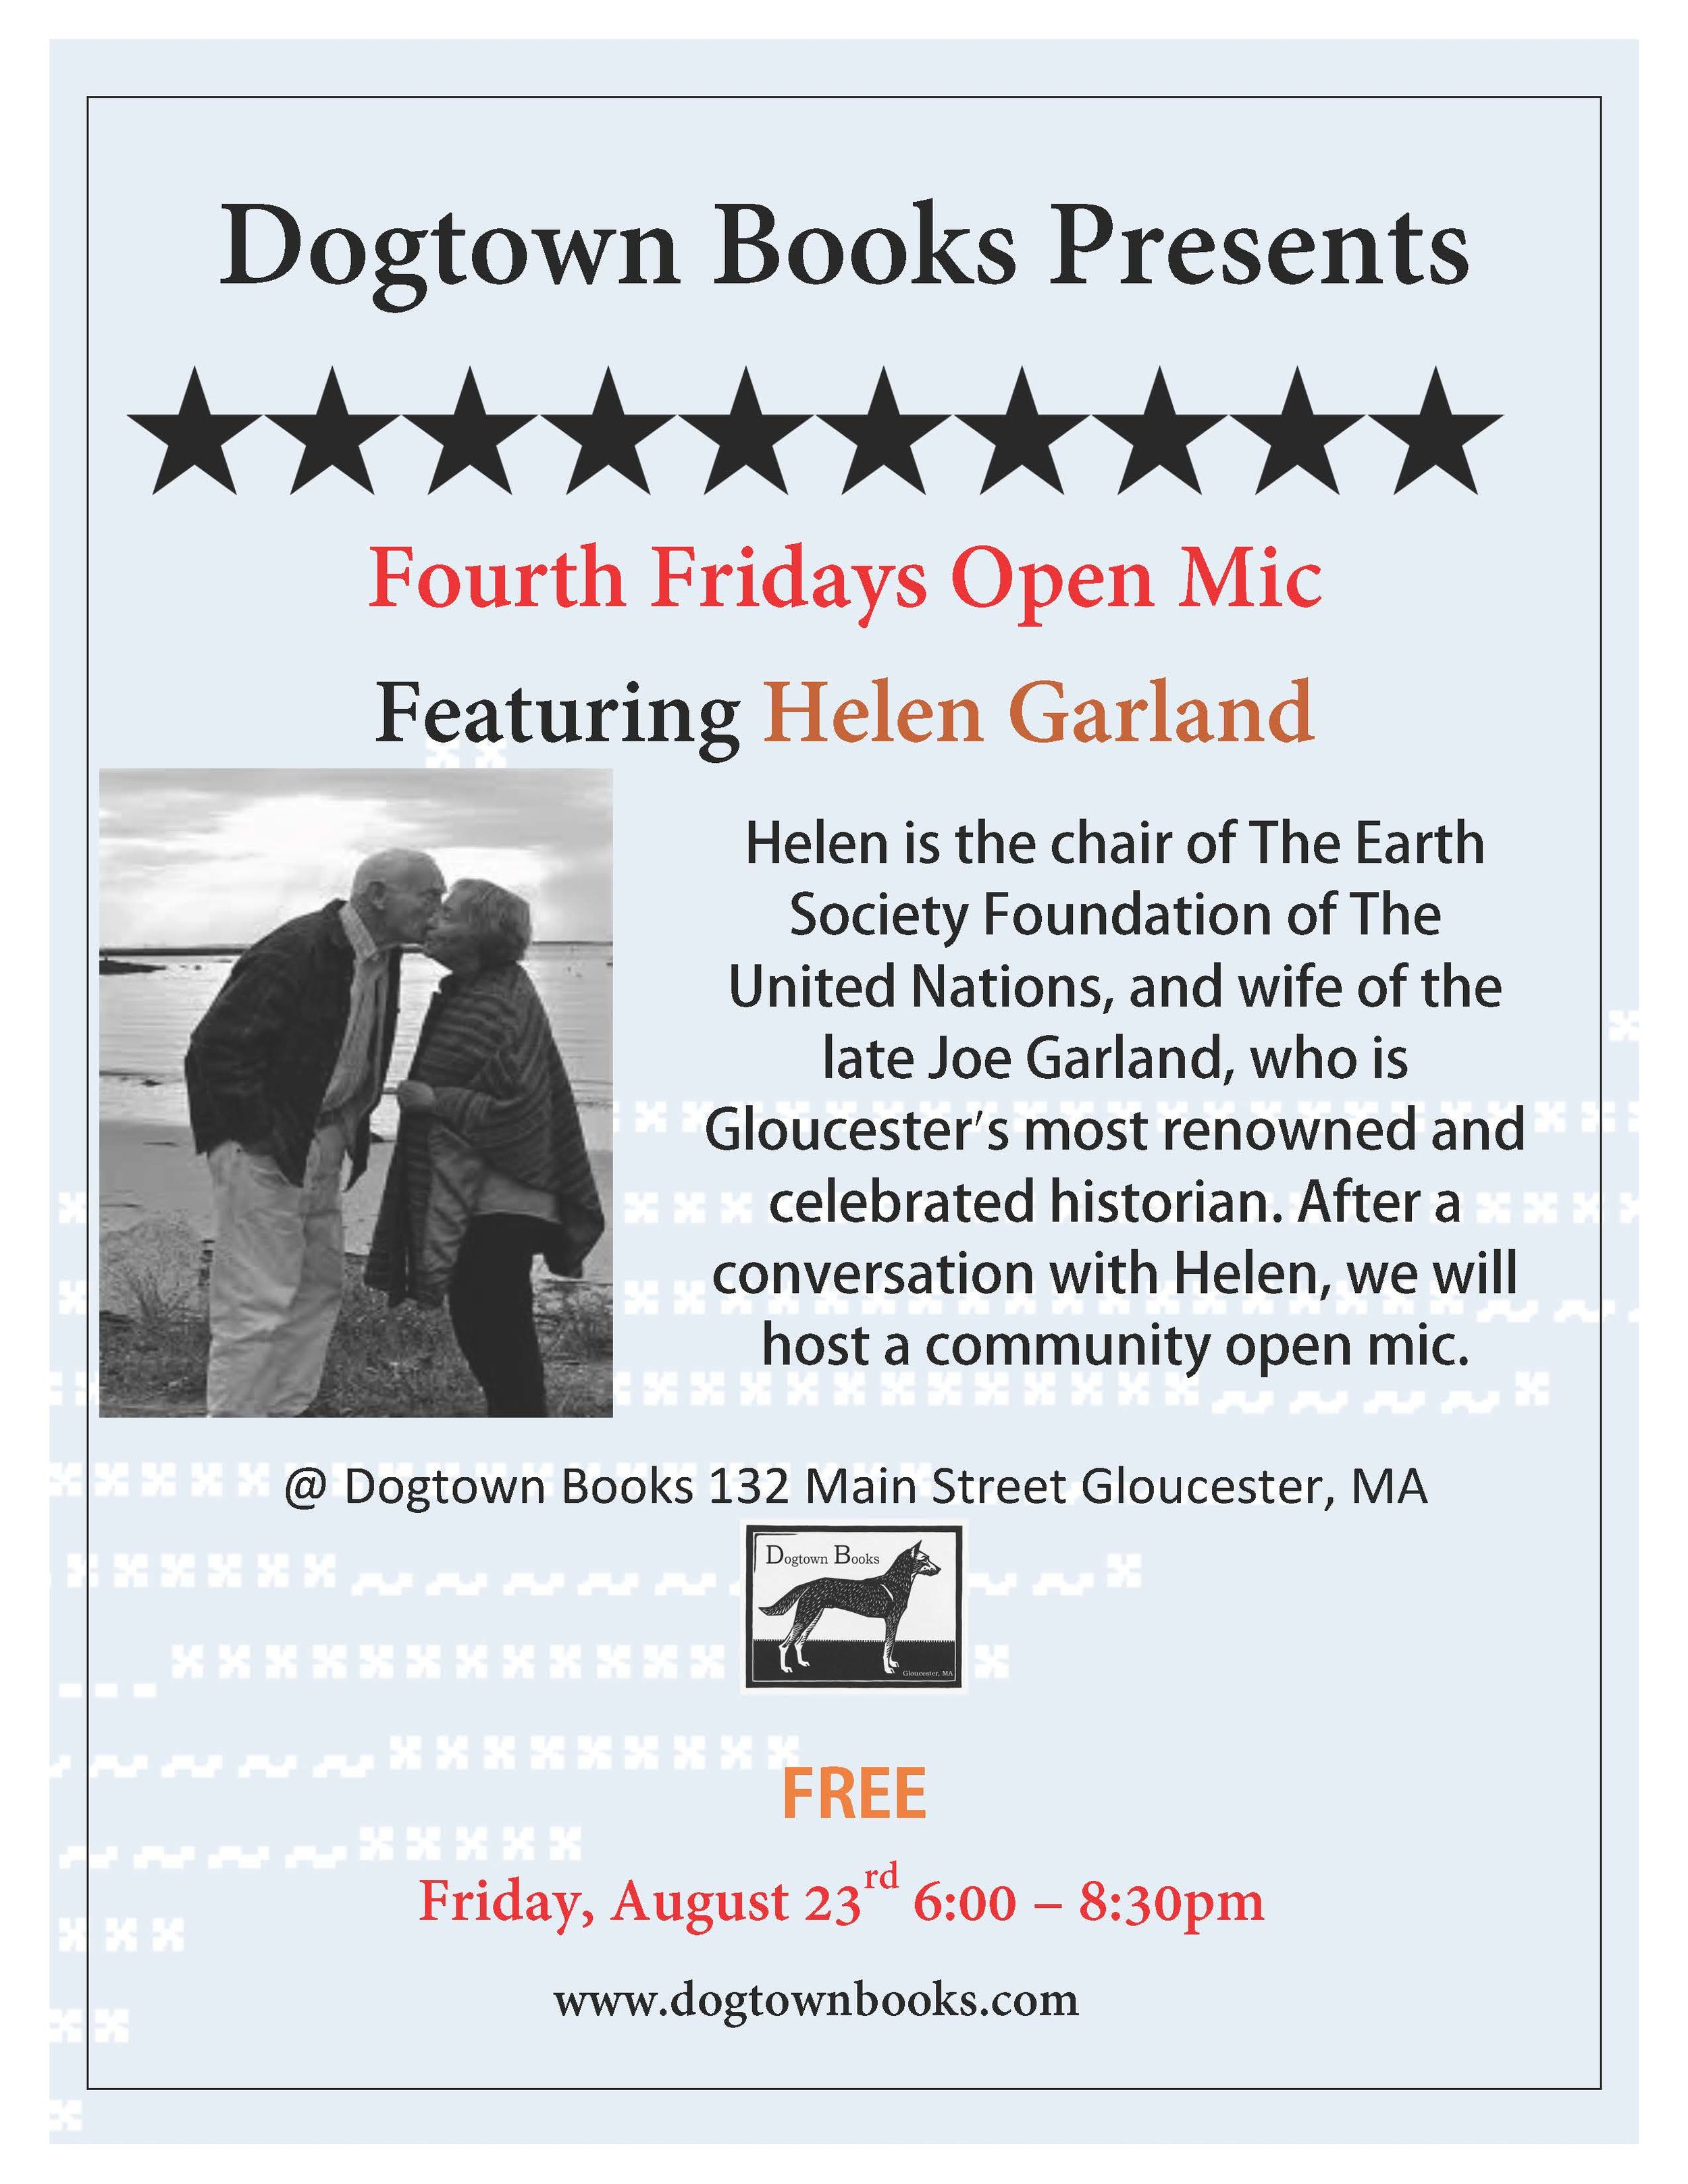 4th Friday Open Mic with Helen Garland: Aug 23 - On Friday, August 23rd we are beyond thrilled to welcome Helen Garland to Dogtown Books. Helen is the Chair of The Earth Society Foundation of The United Nations, and wife of the late Joe Garland, who became Gloucester's most notable and celebrated historian.After we talk with Helen, we will host a community open mic! Take the stage with your own poetry, prose, music, comedy or whatever you want to do!6-8:30pm; FREE